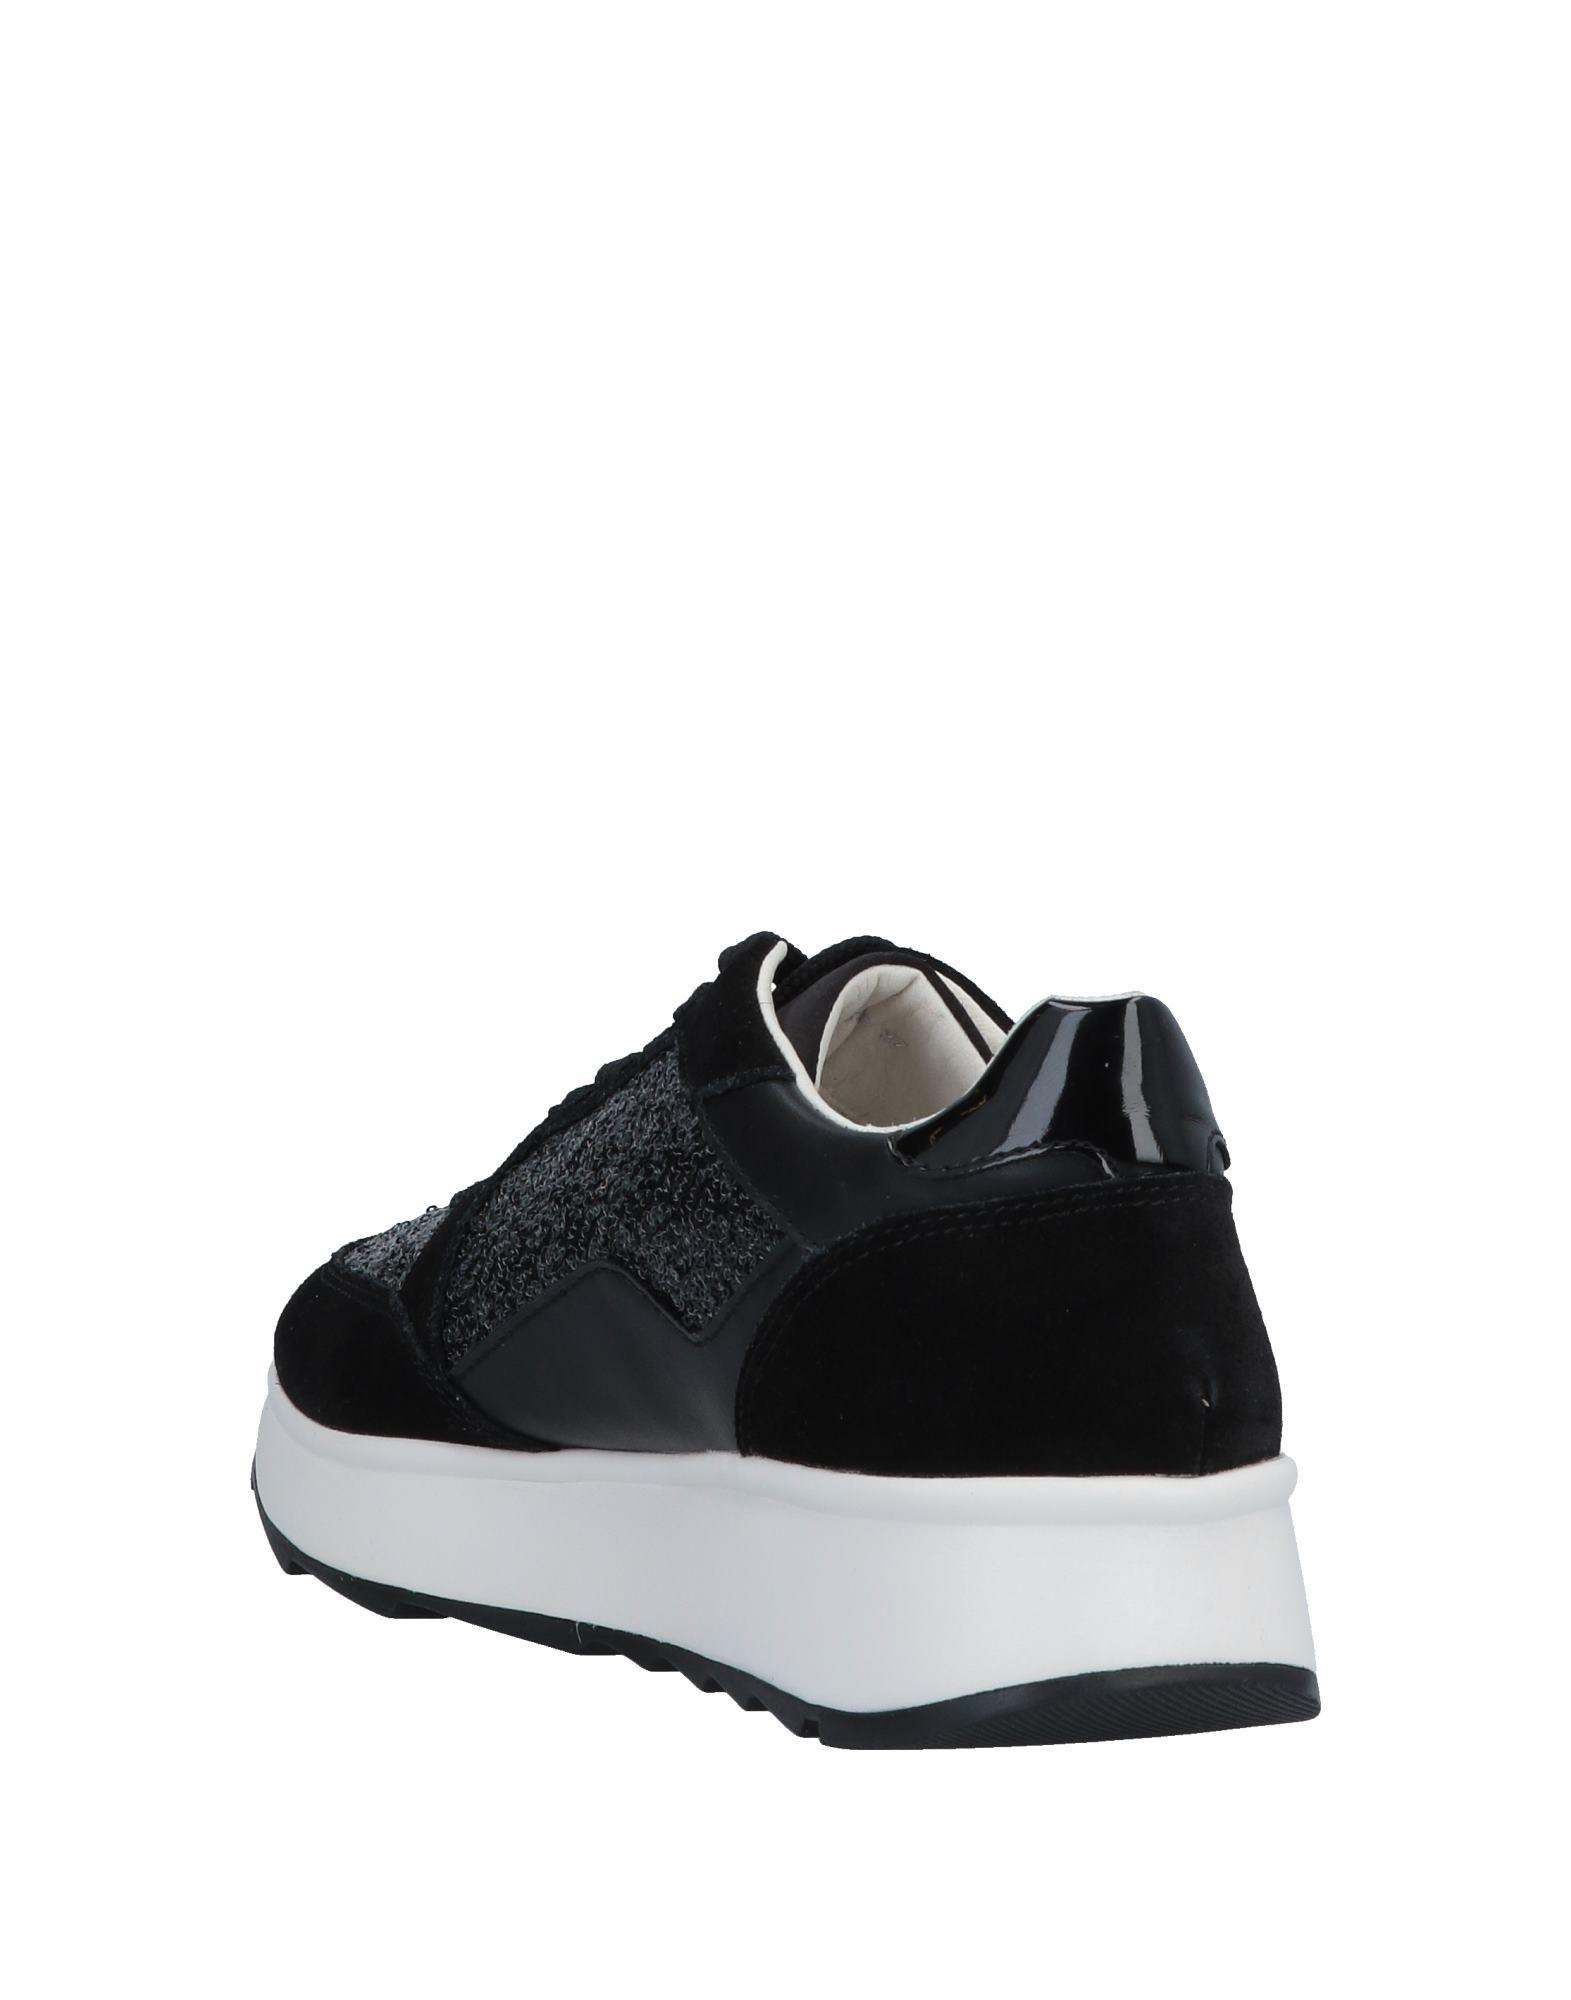 Sneakers & Tennis basses Satin Geox en coloris Noir wQaZ